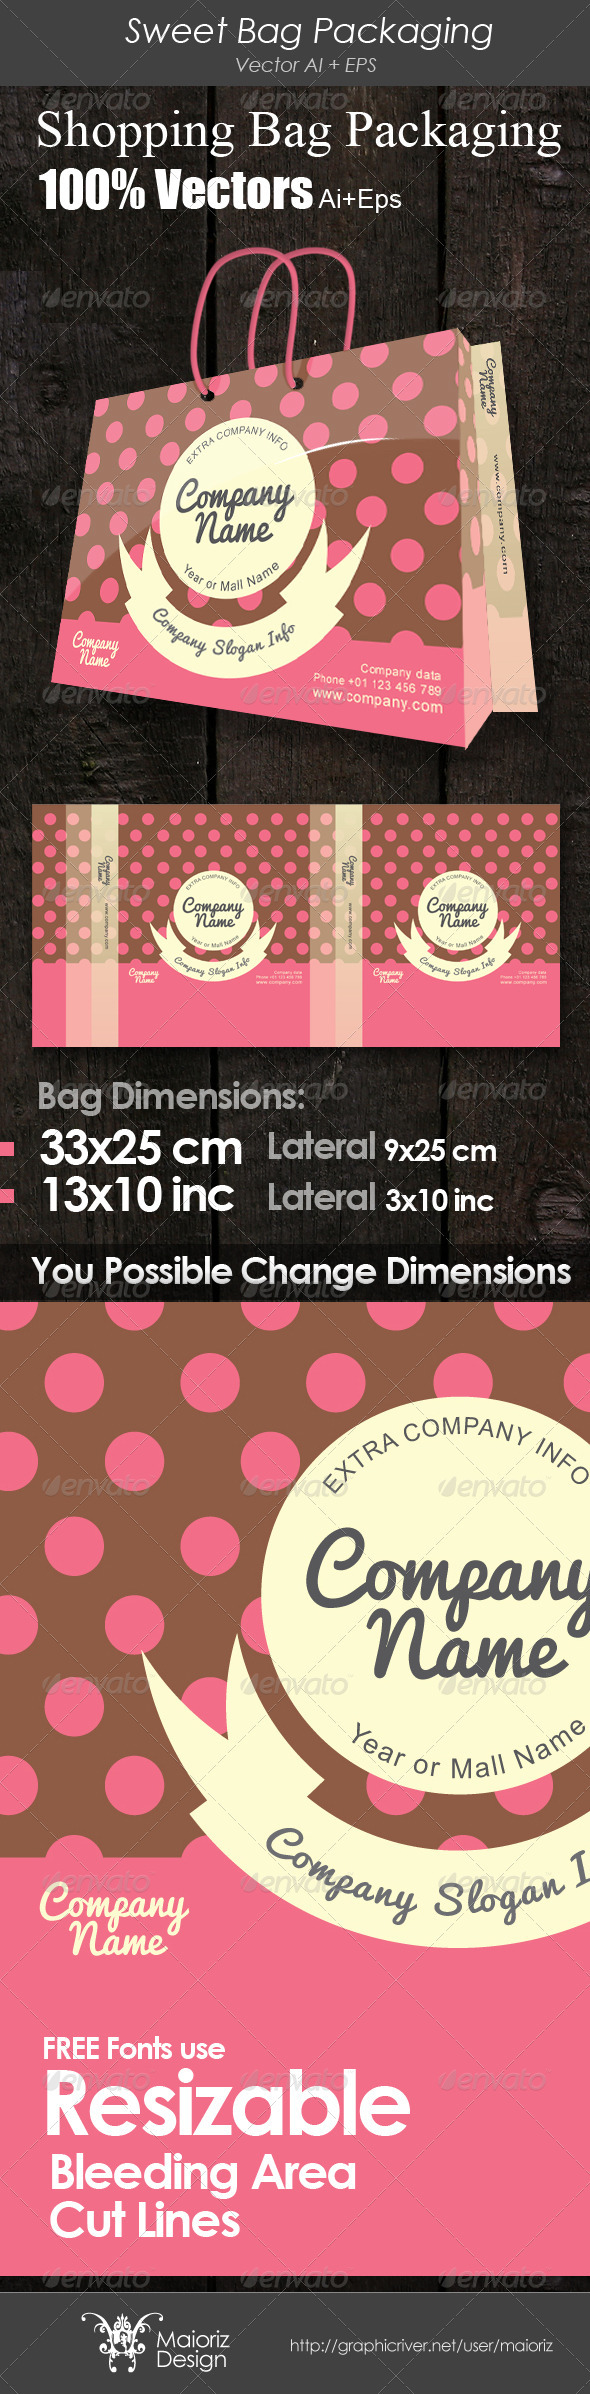 GraphicRiver Sweet Bag Packaging 4038113